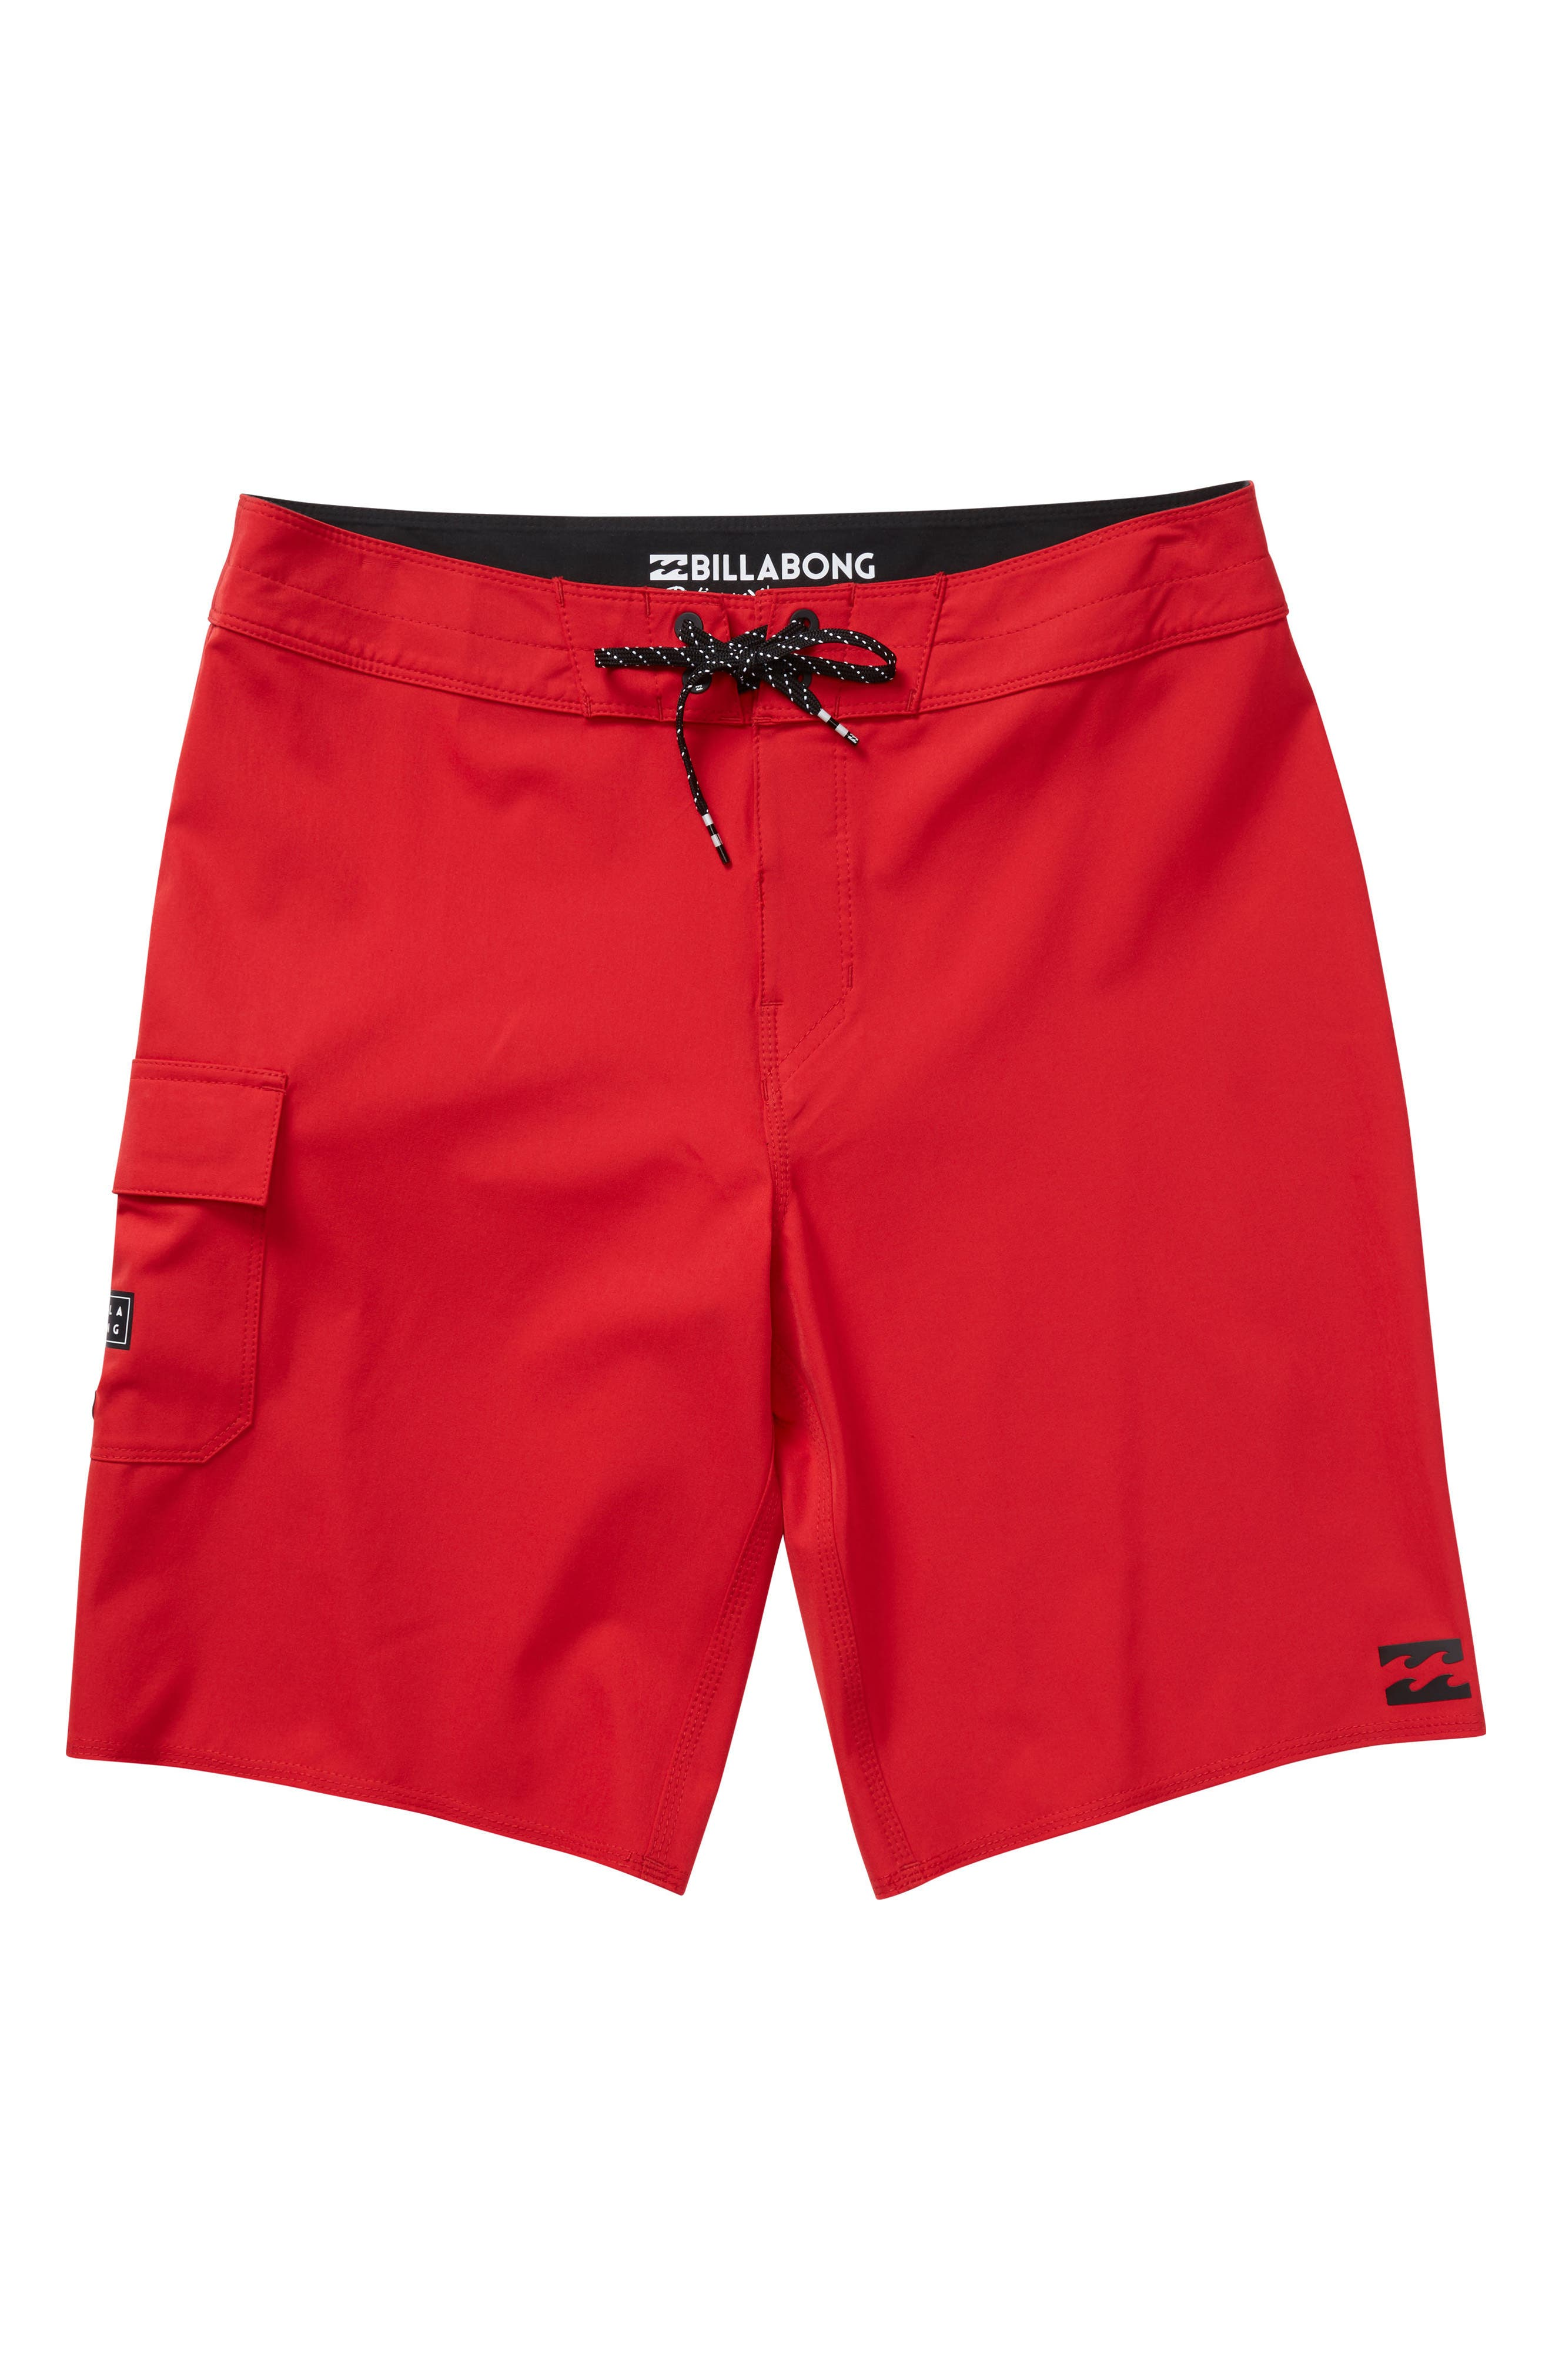 All Day X Board Shorts,                         Main,                         color, RED